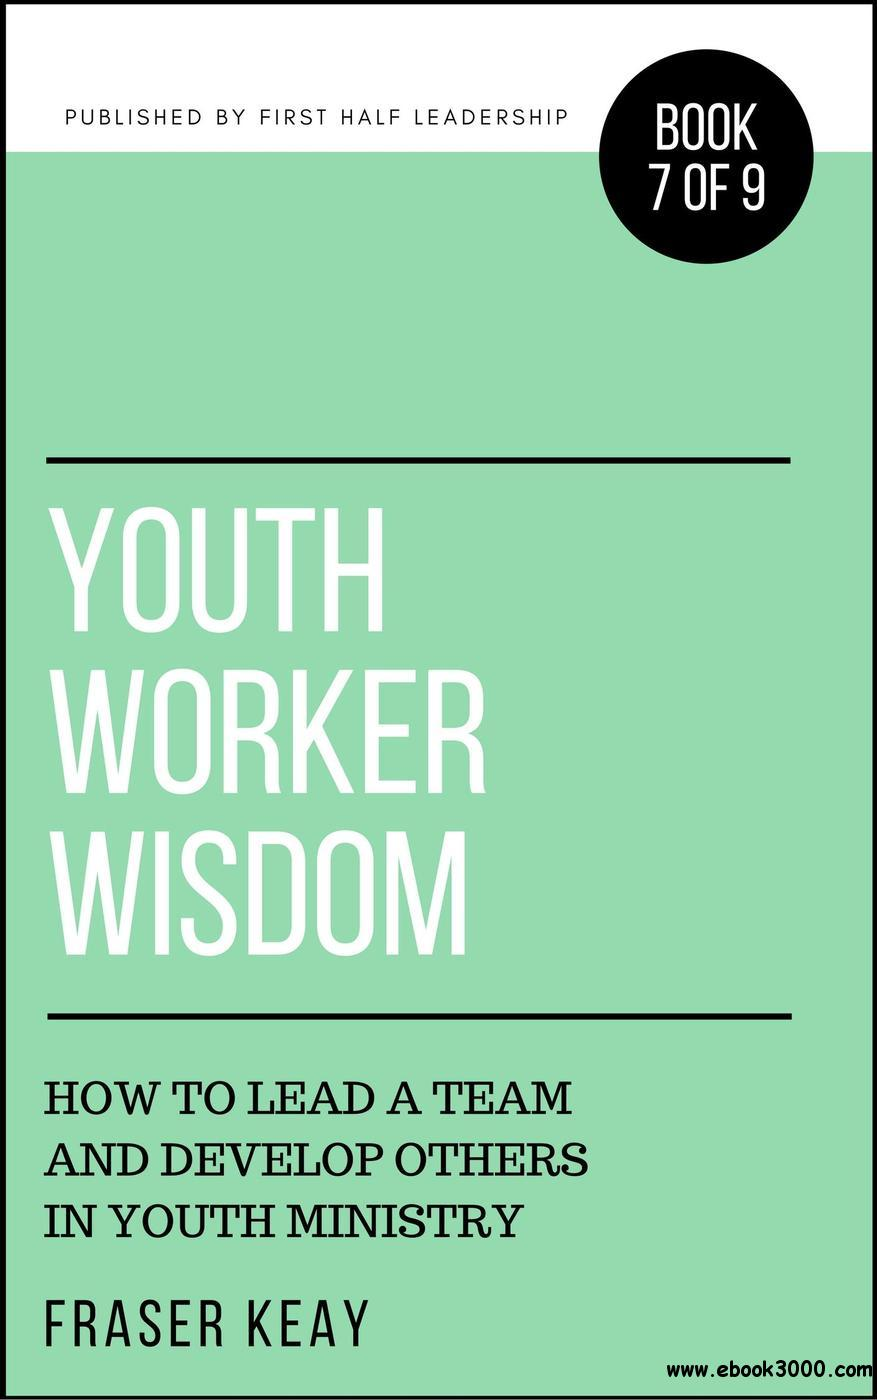 Youth Worker Wisdom: How to Lead a Team and Develop Others in Youth Ministry